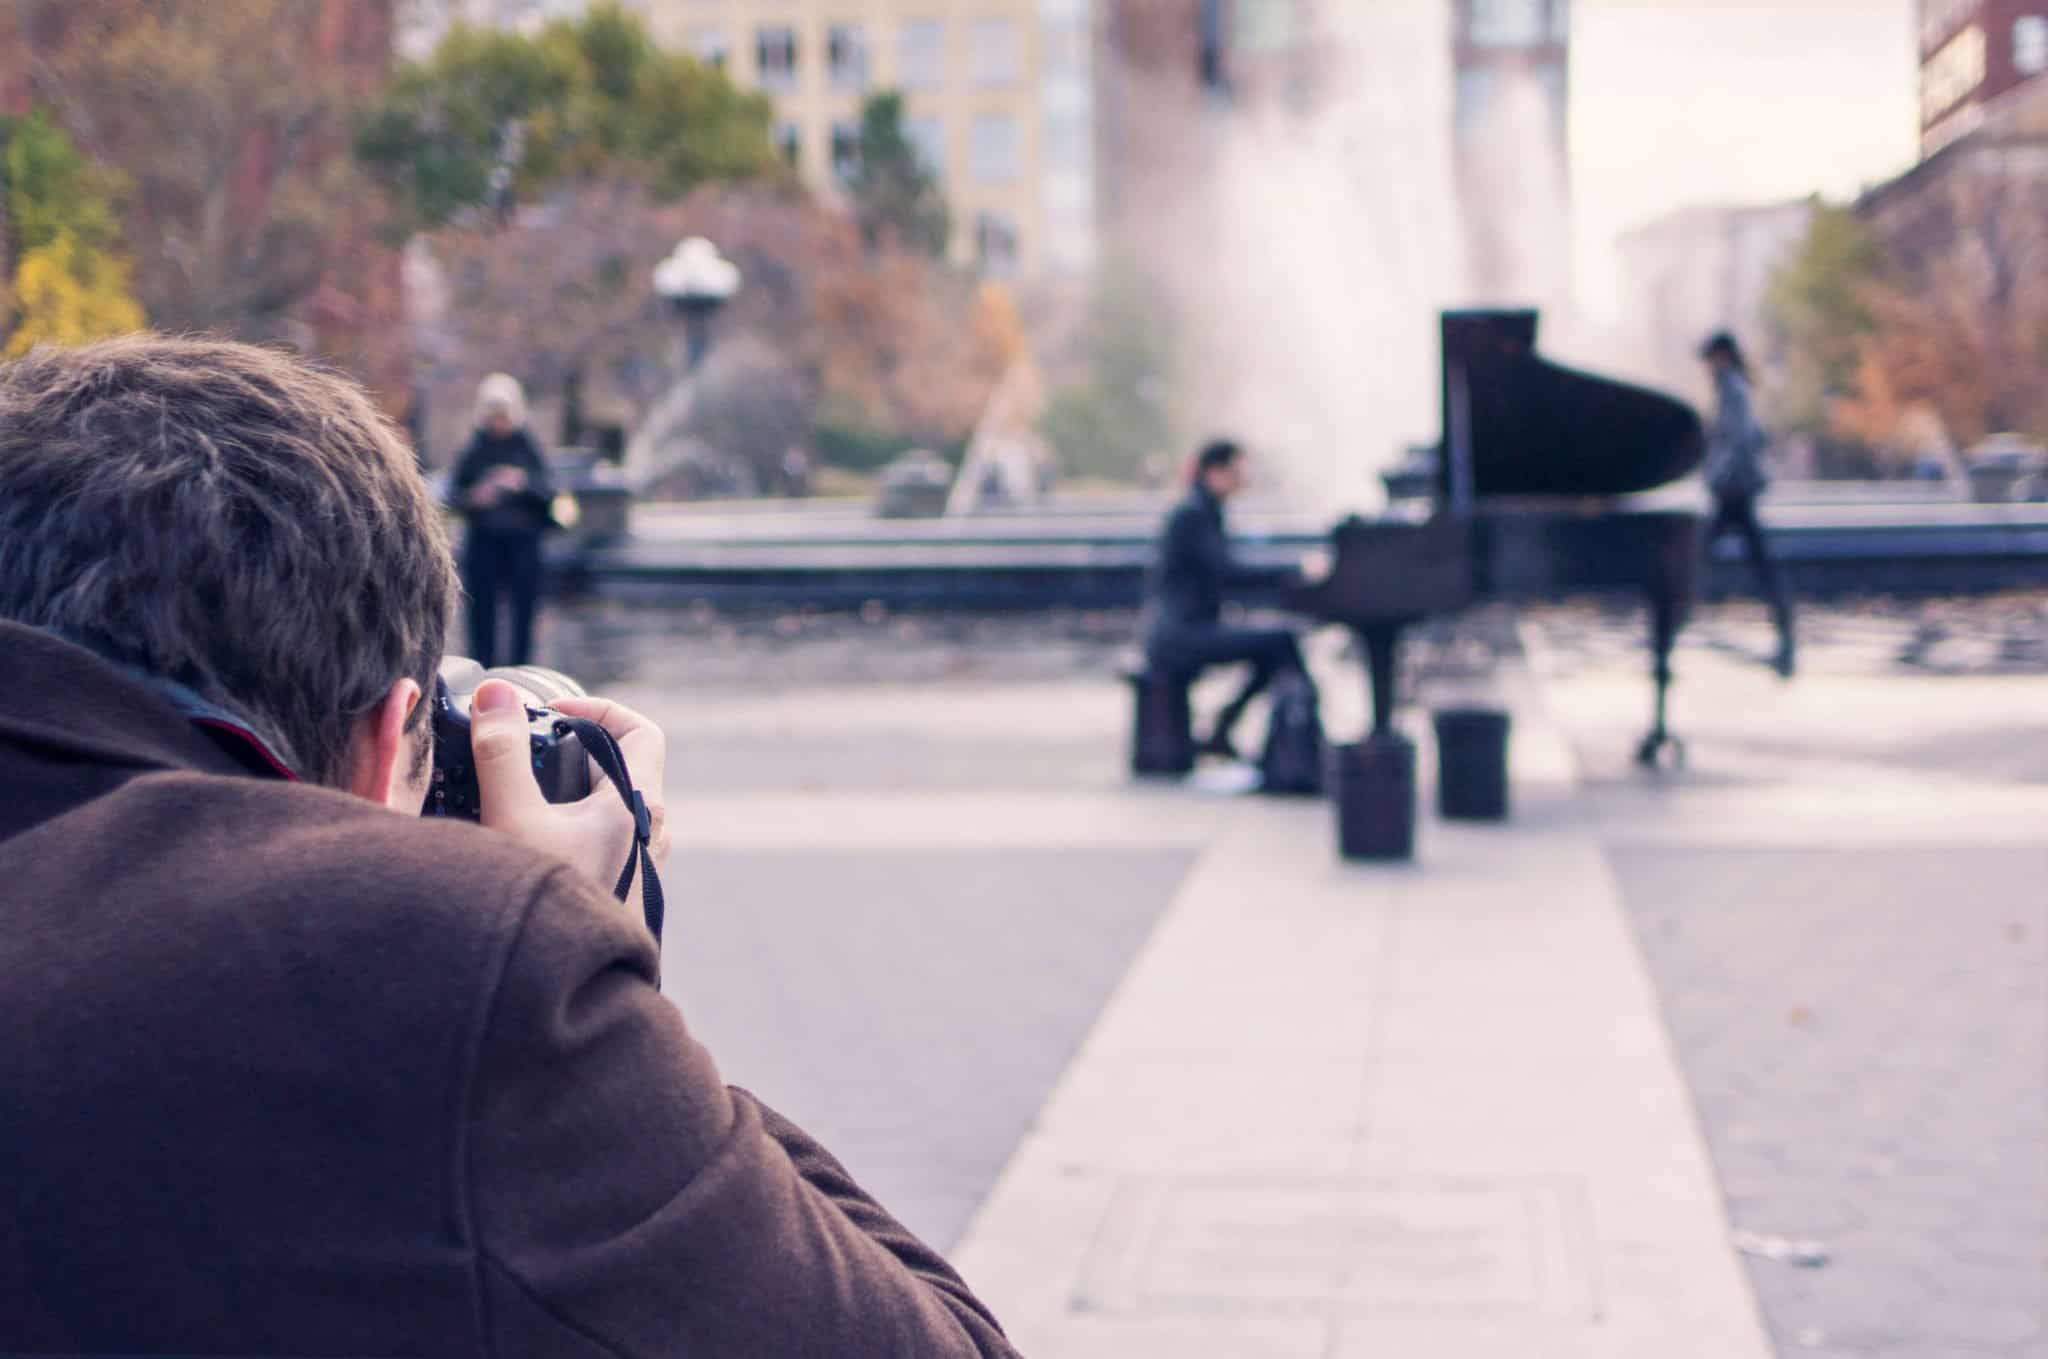 Pianist being photographed